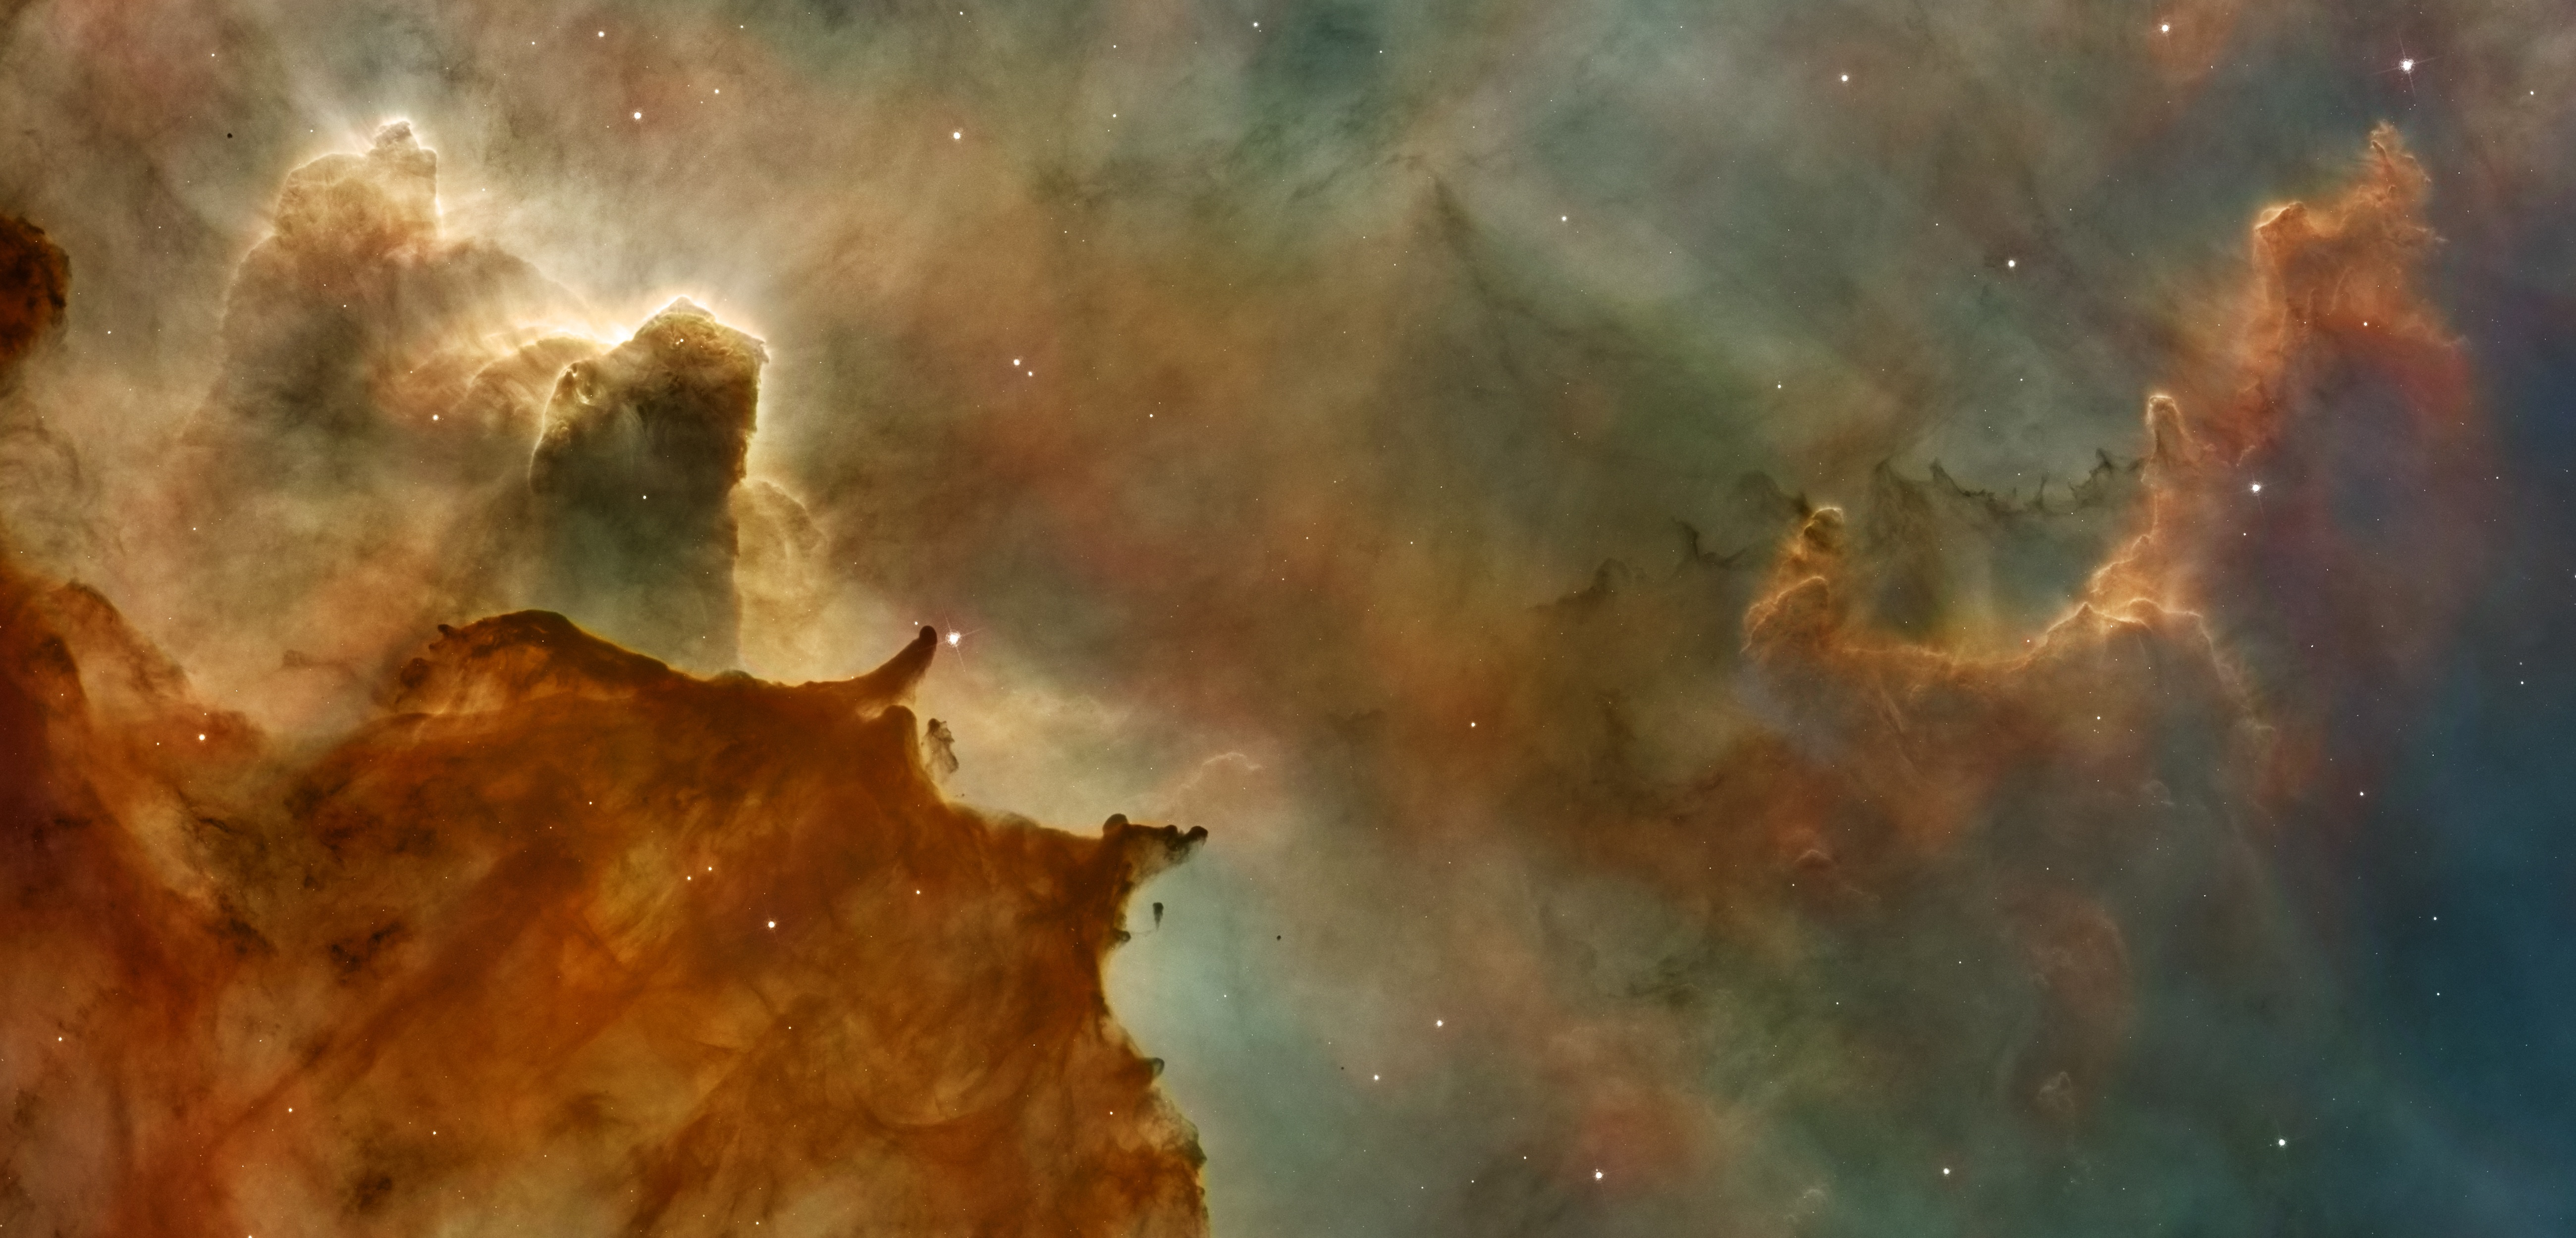 wallpapers hubble space telescope, space, nebula, galaxy, stars